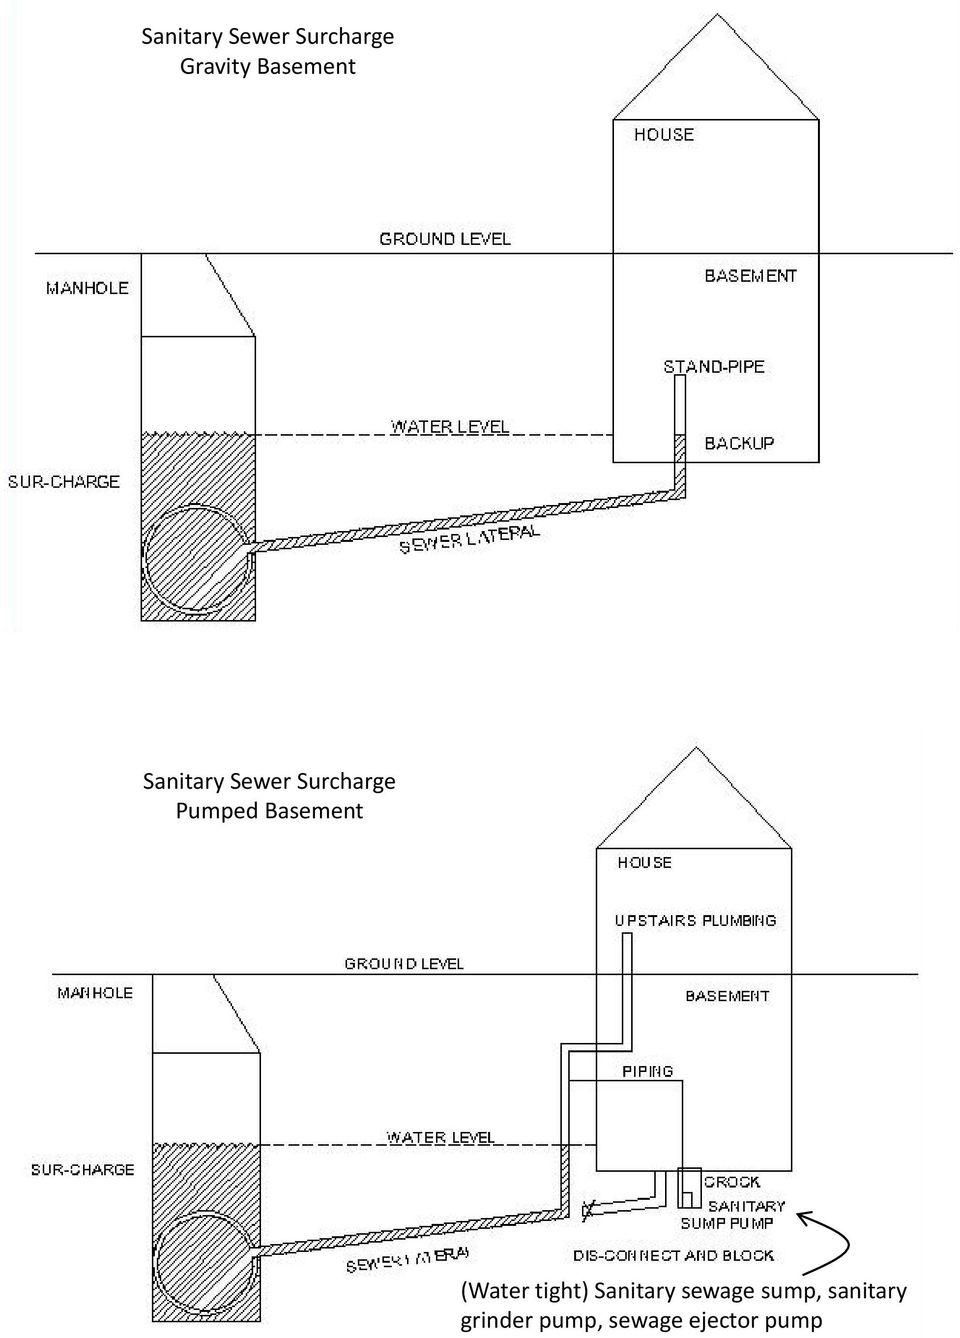 Basement (Water tight) Sanitary sewage